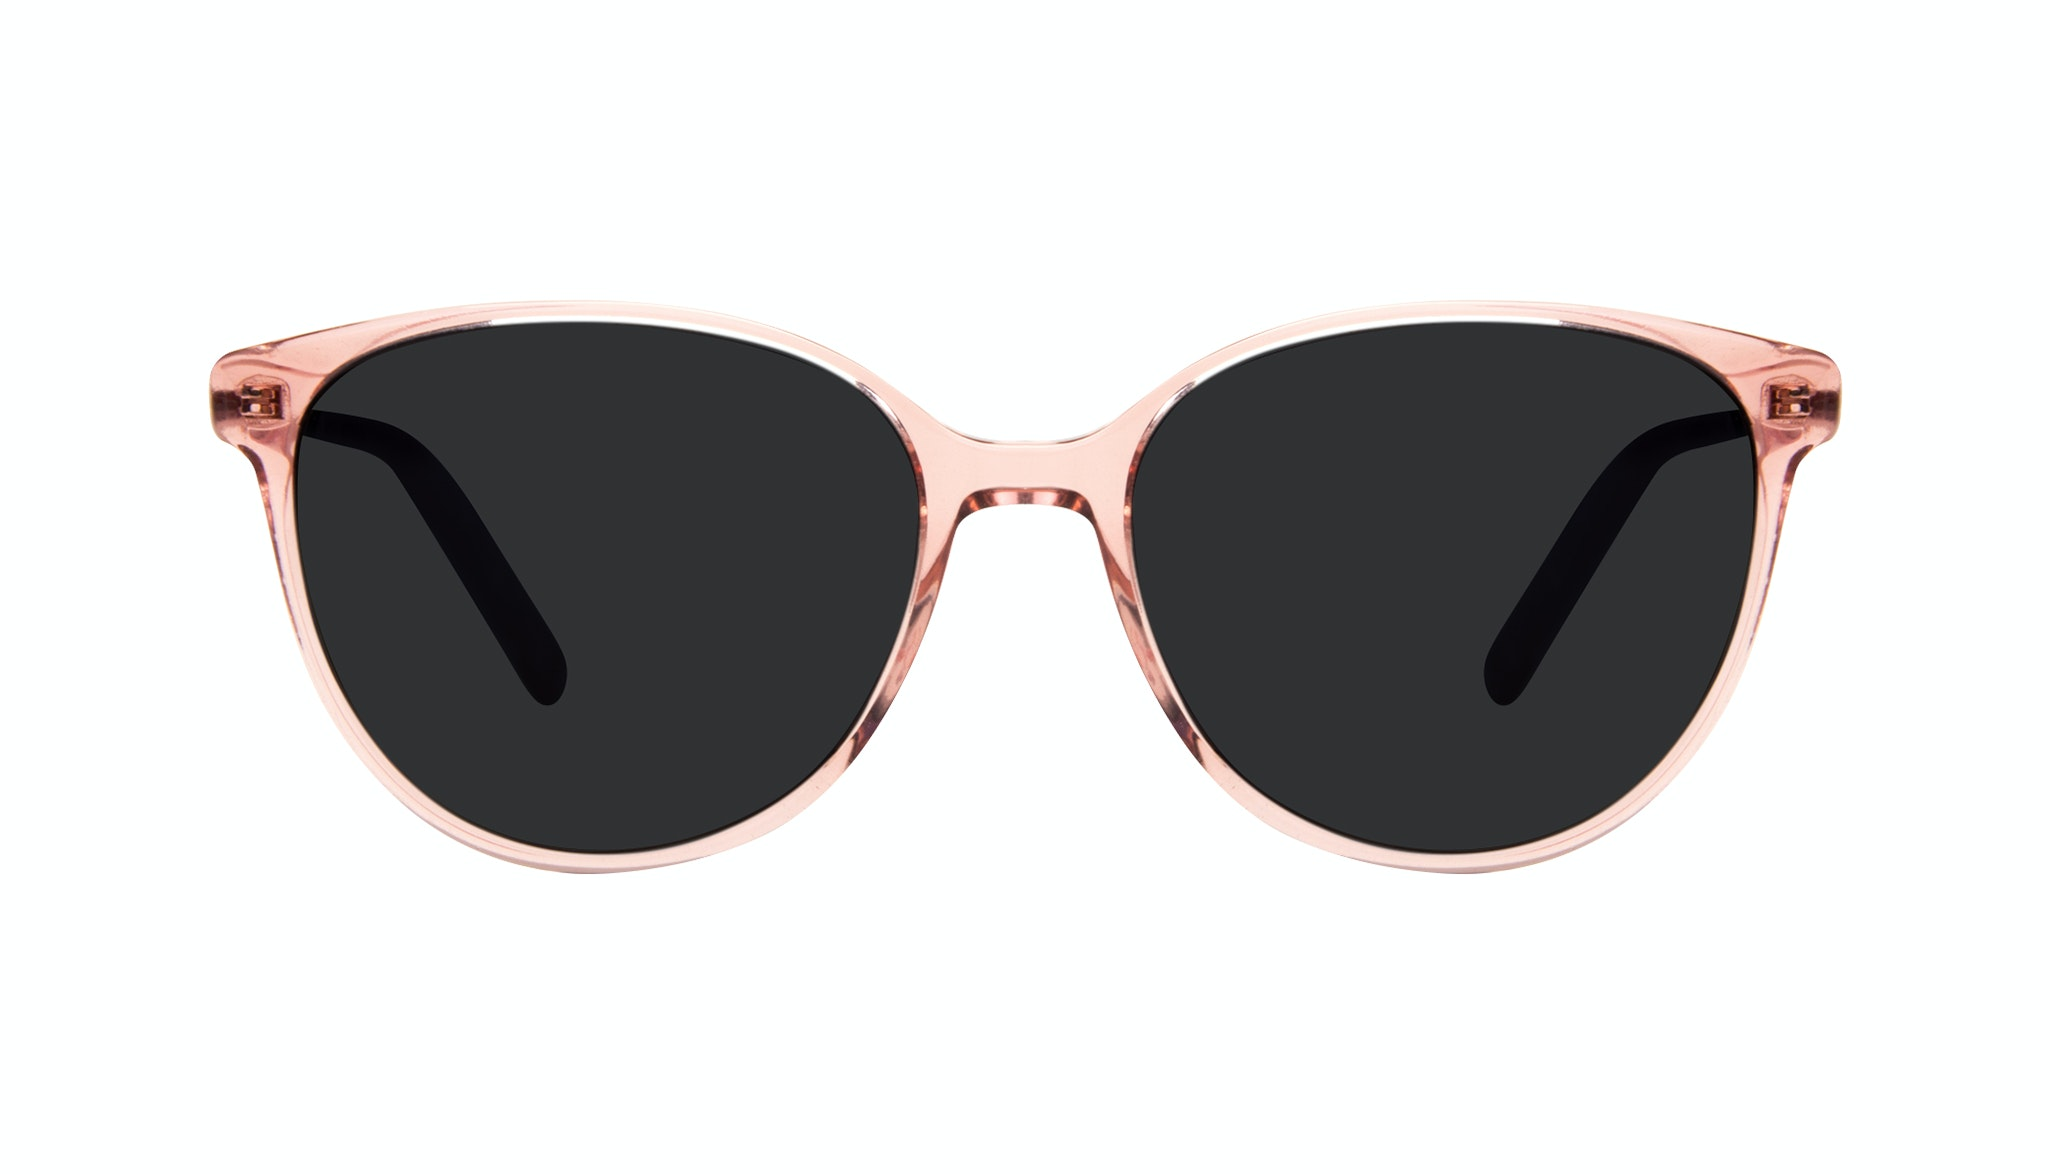 Affordable Fashion Glasses Round Sunglasses Women Imagine II Rose Marble